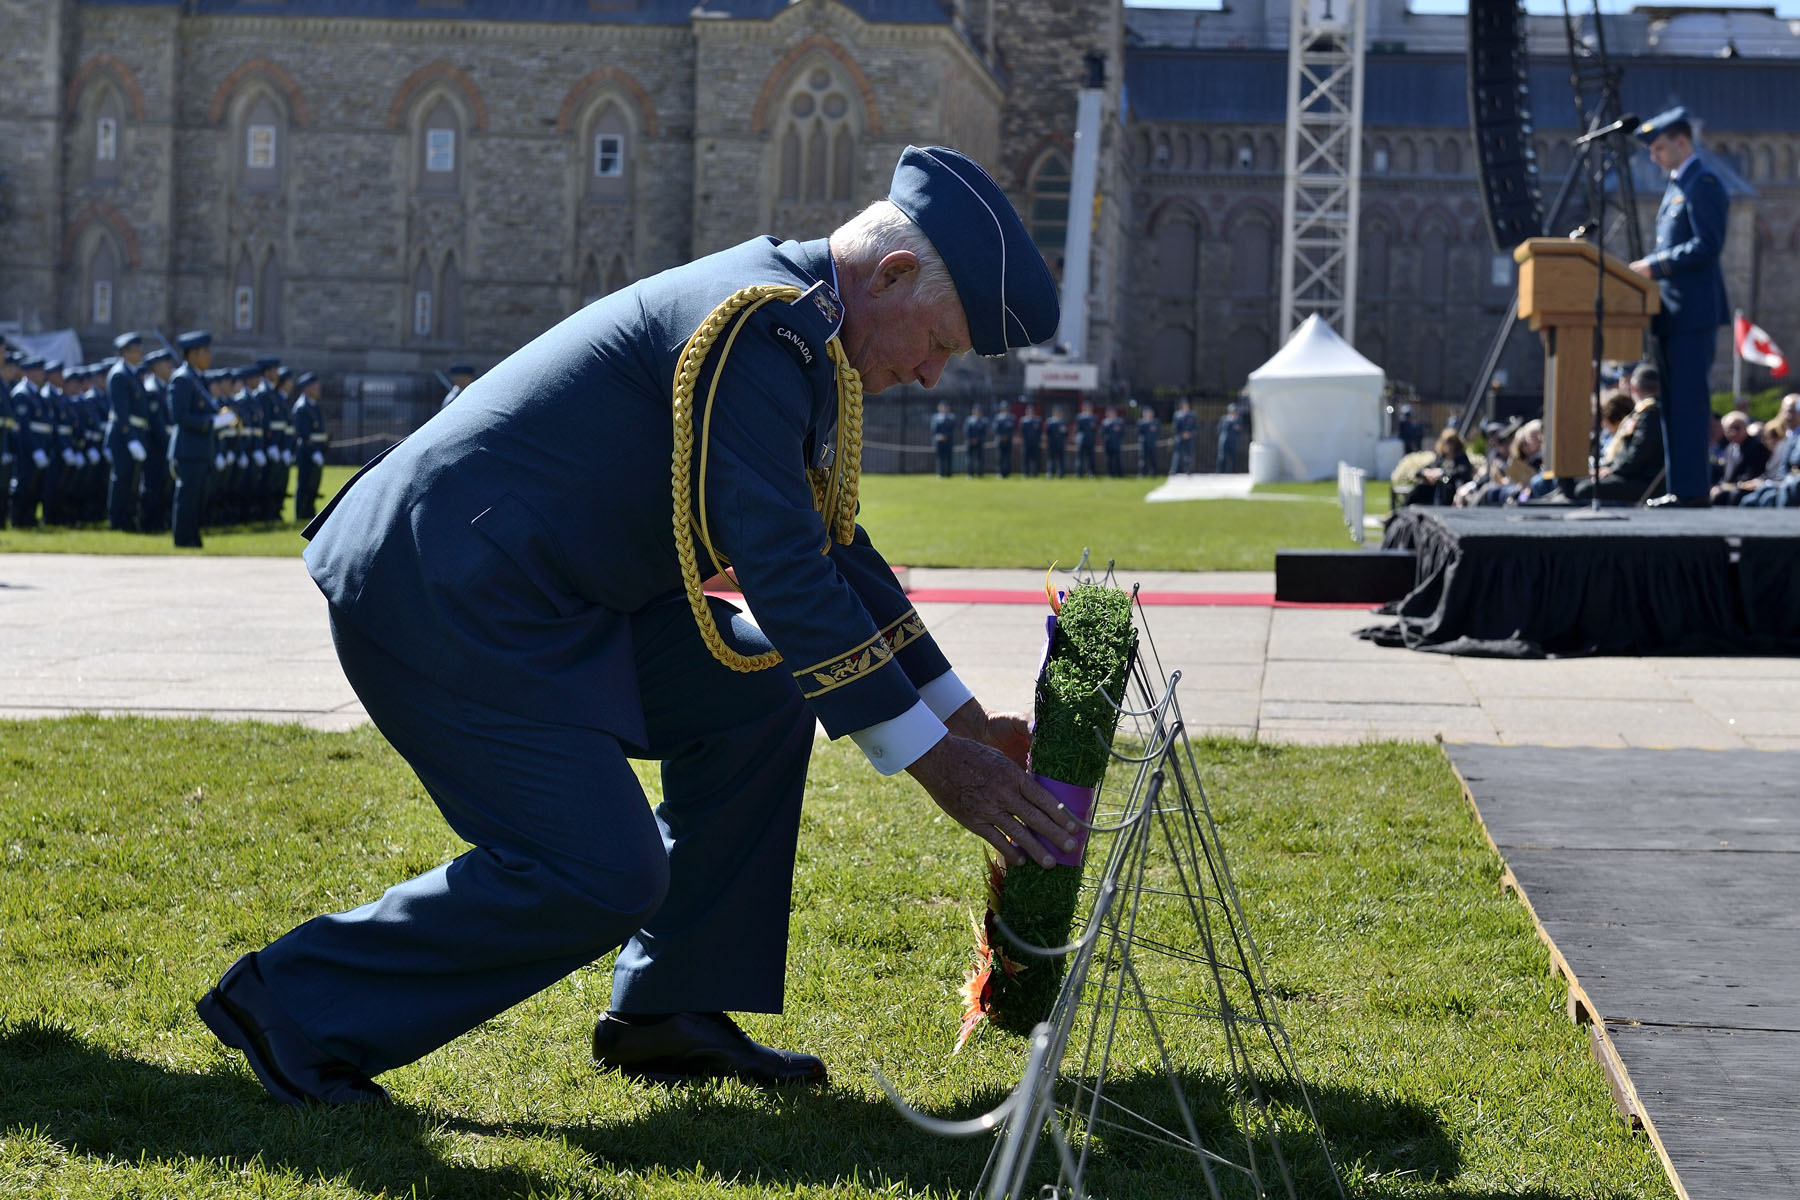 He also laid a wreath to pay tribute to the airmen who fought and died during the battle and to acknowledge those who continue to serve in the Royal Canadian Air Force today.